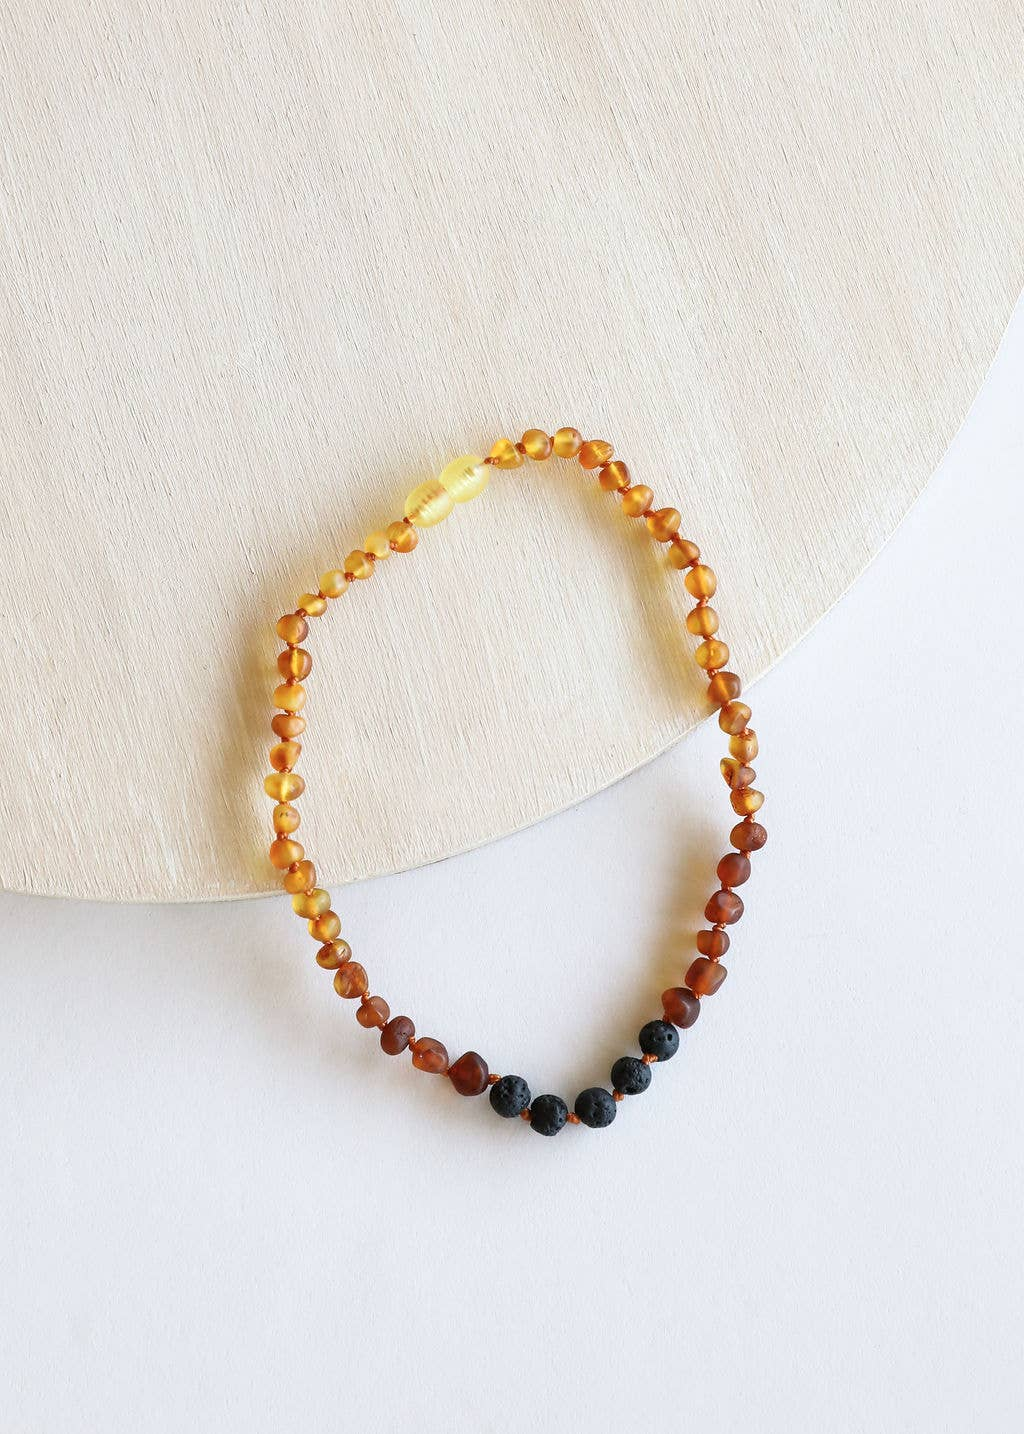 CanyonLeaf - Adult: Raw Ombre Amber + Lava Stone Necklace